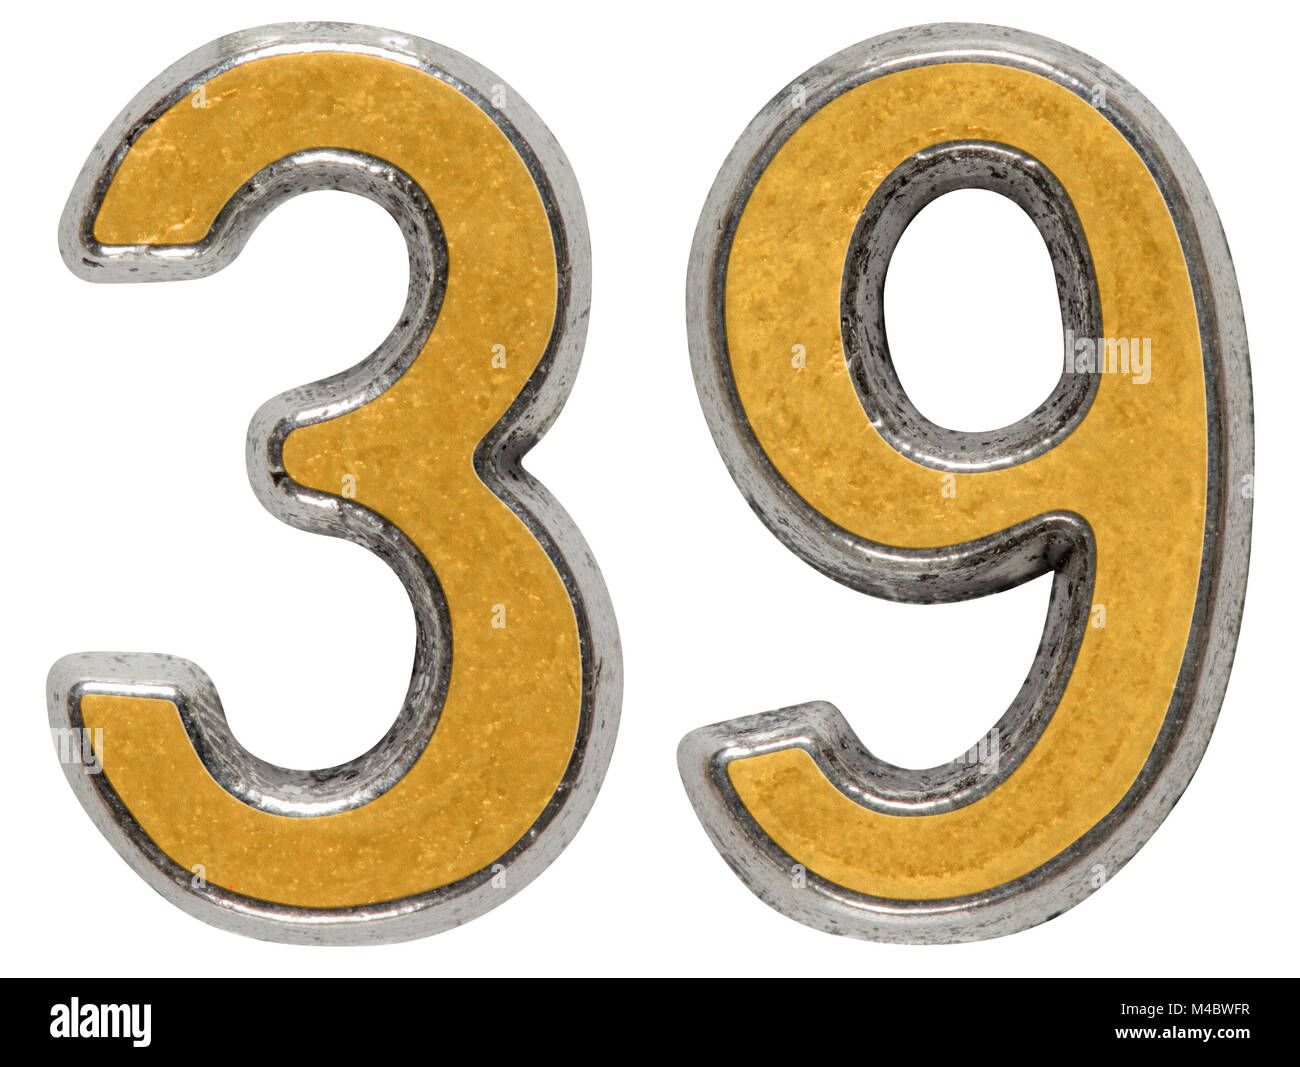 Metal numeral 39, thirty-ninth, isolated on white background - Stock Image